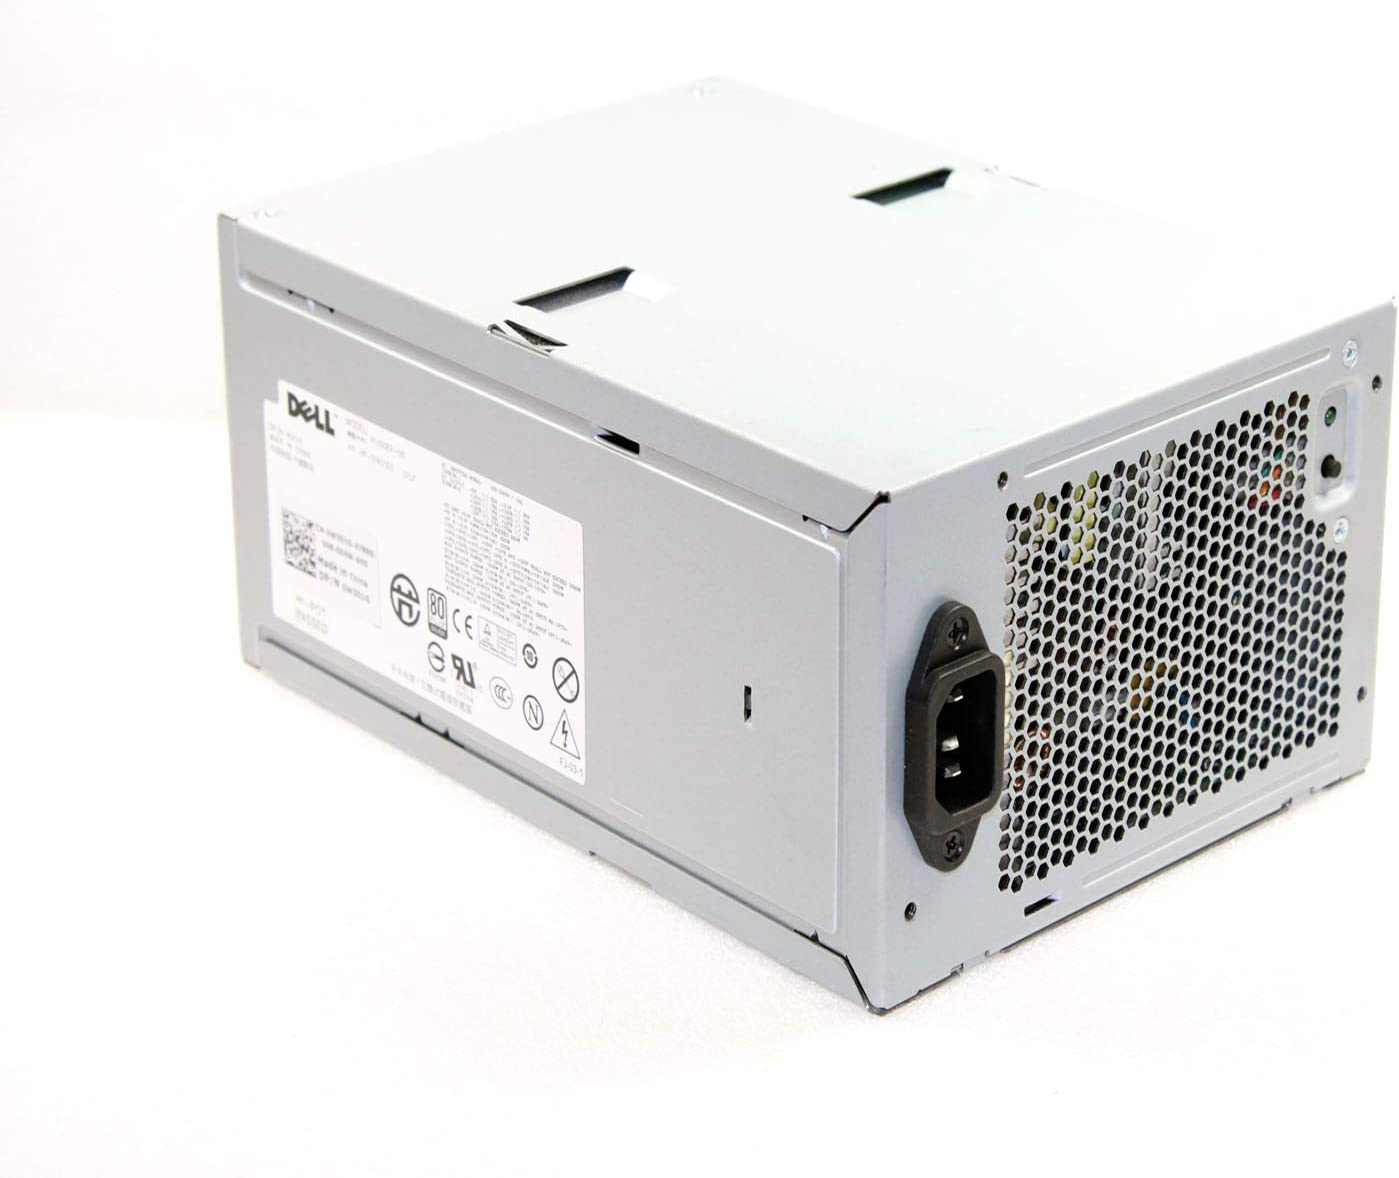 Dell Genuine R622G 1100W Power Supply Without Harness for The Precision T7500 System, Compatible Part Number: G821T